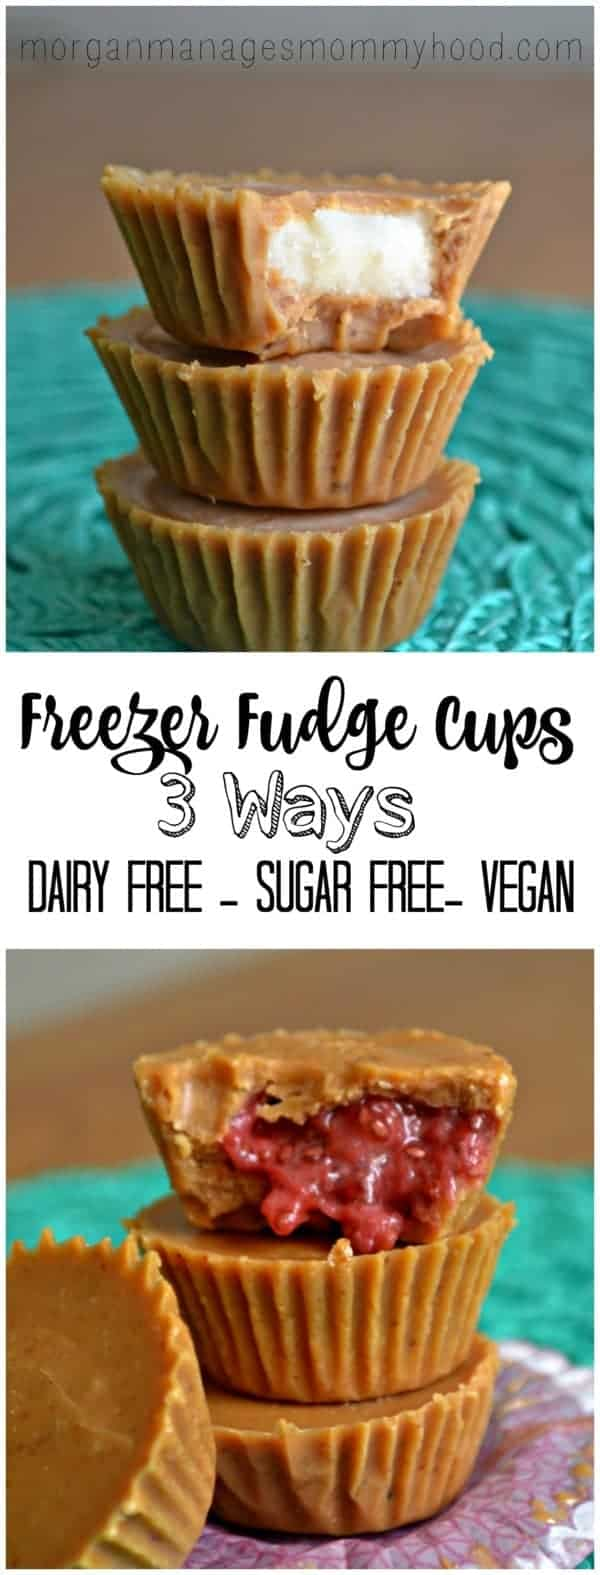 Freezer Fudge cups are Refined Sugar Free and Dairy Free treats you and your kids are sure to love!